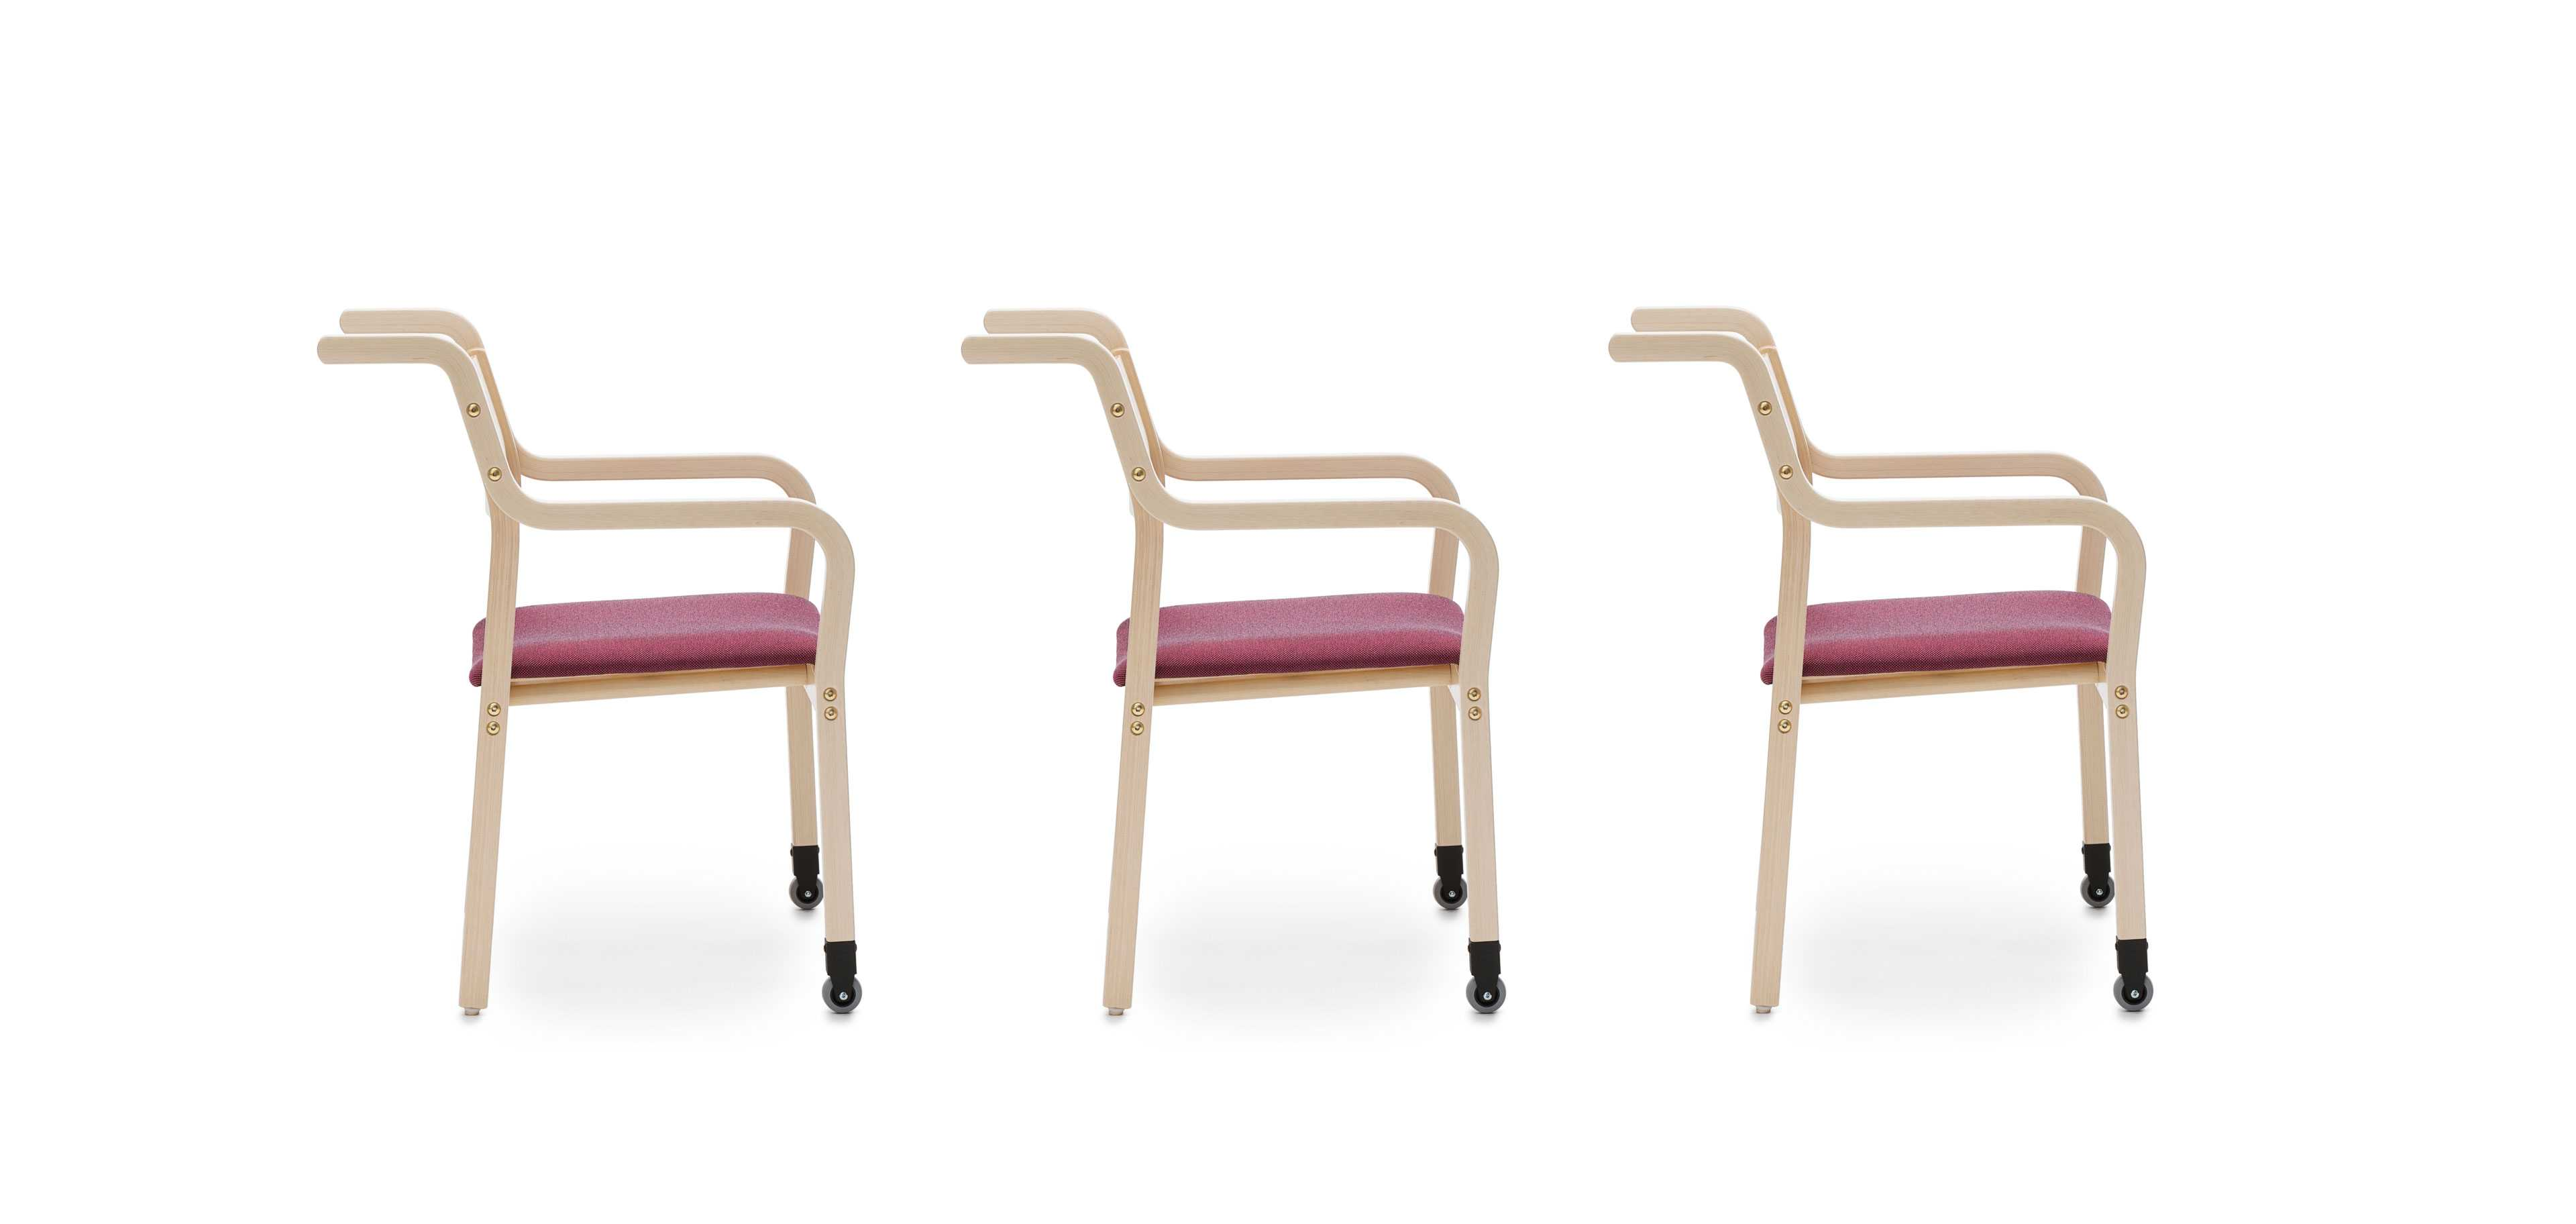 Salus care chair by Martela